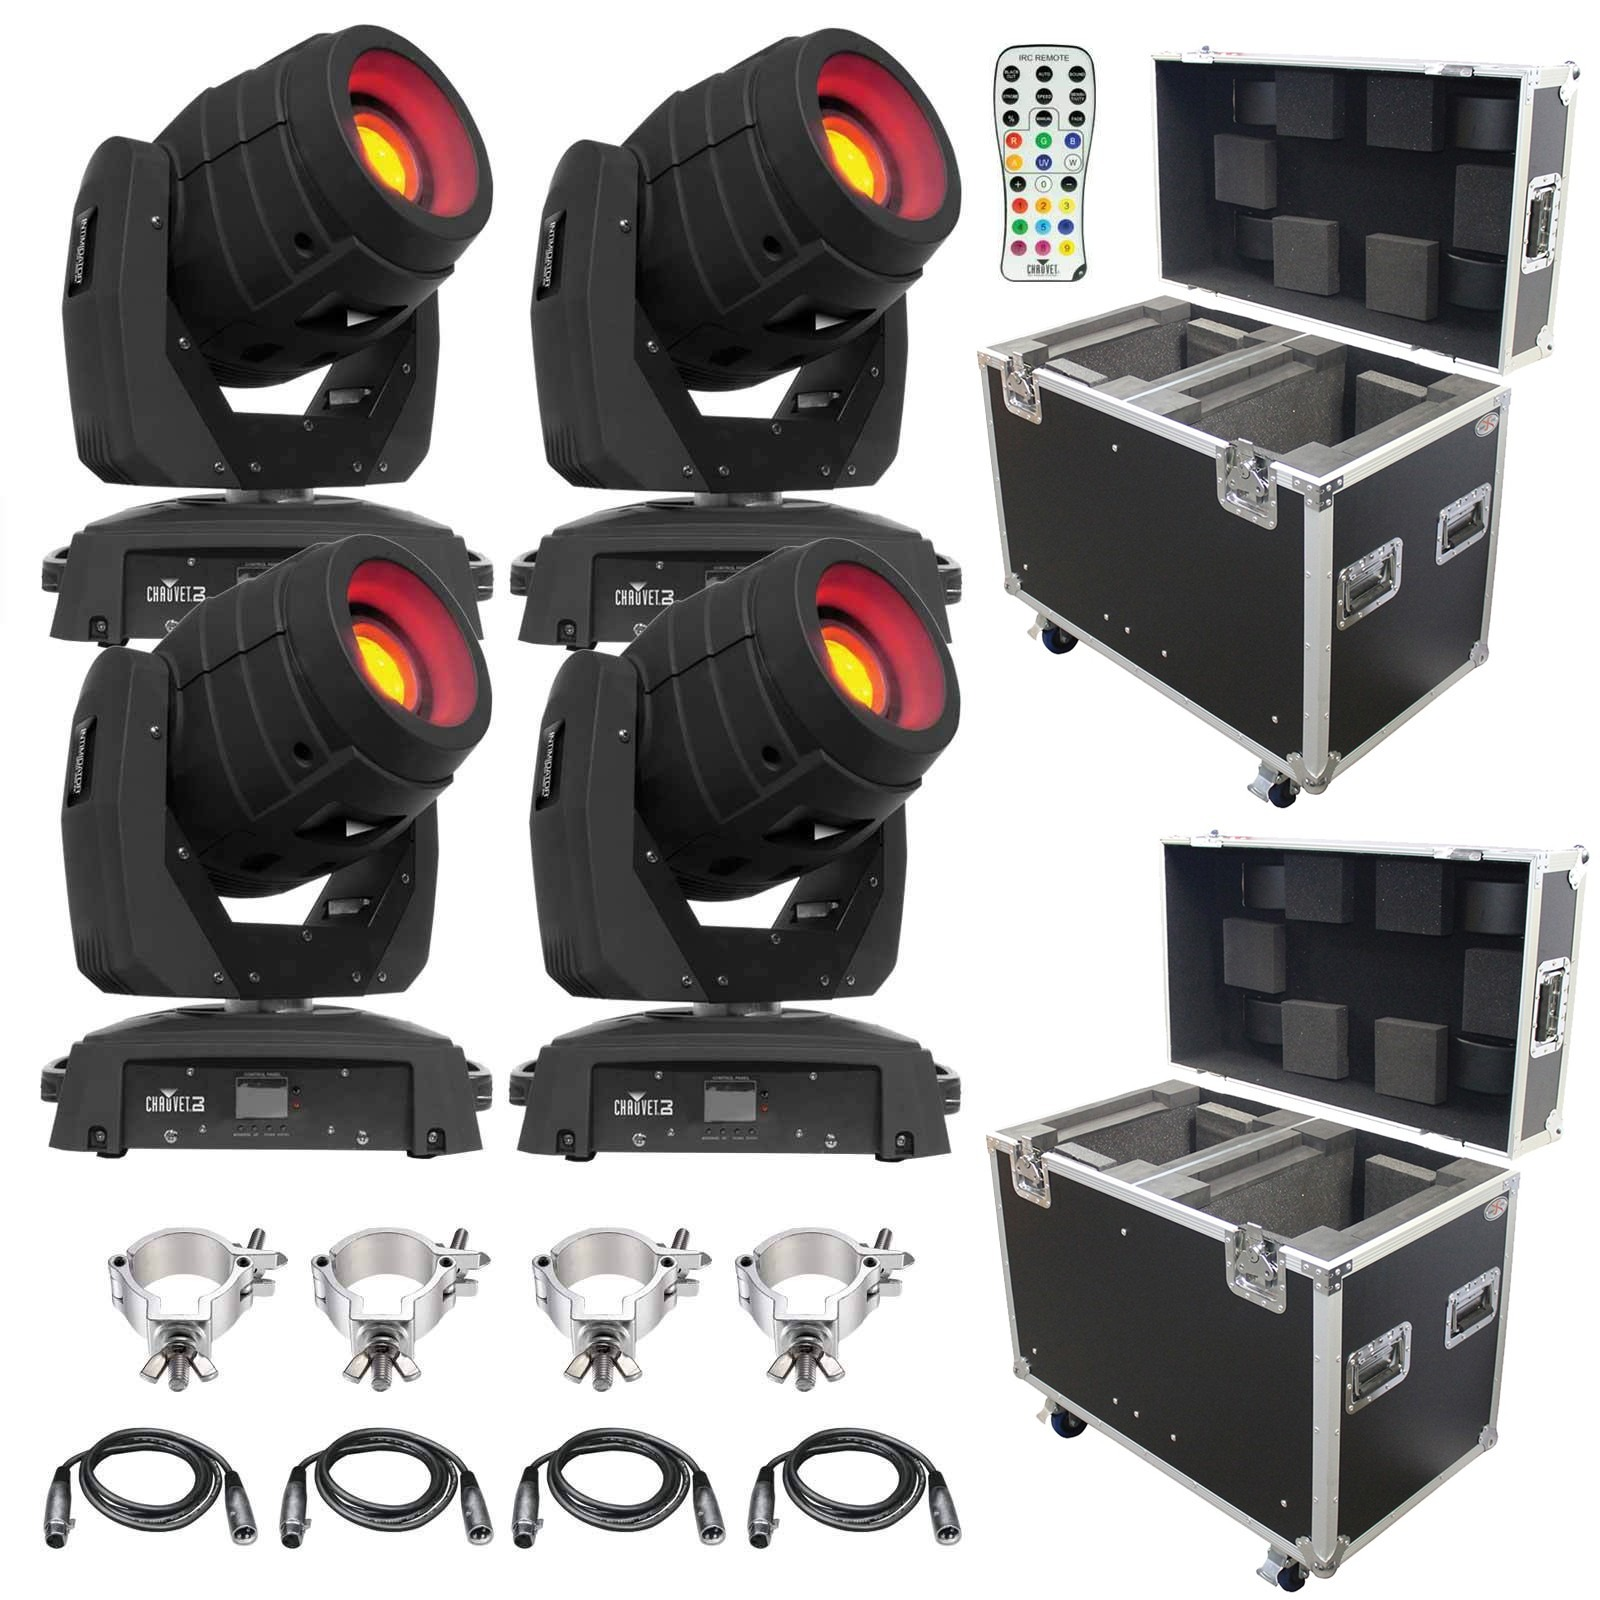 Chauvet dj intimidator spot 355 irc package 2 for Lighting packages for new homes